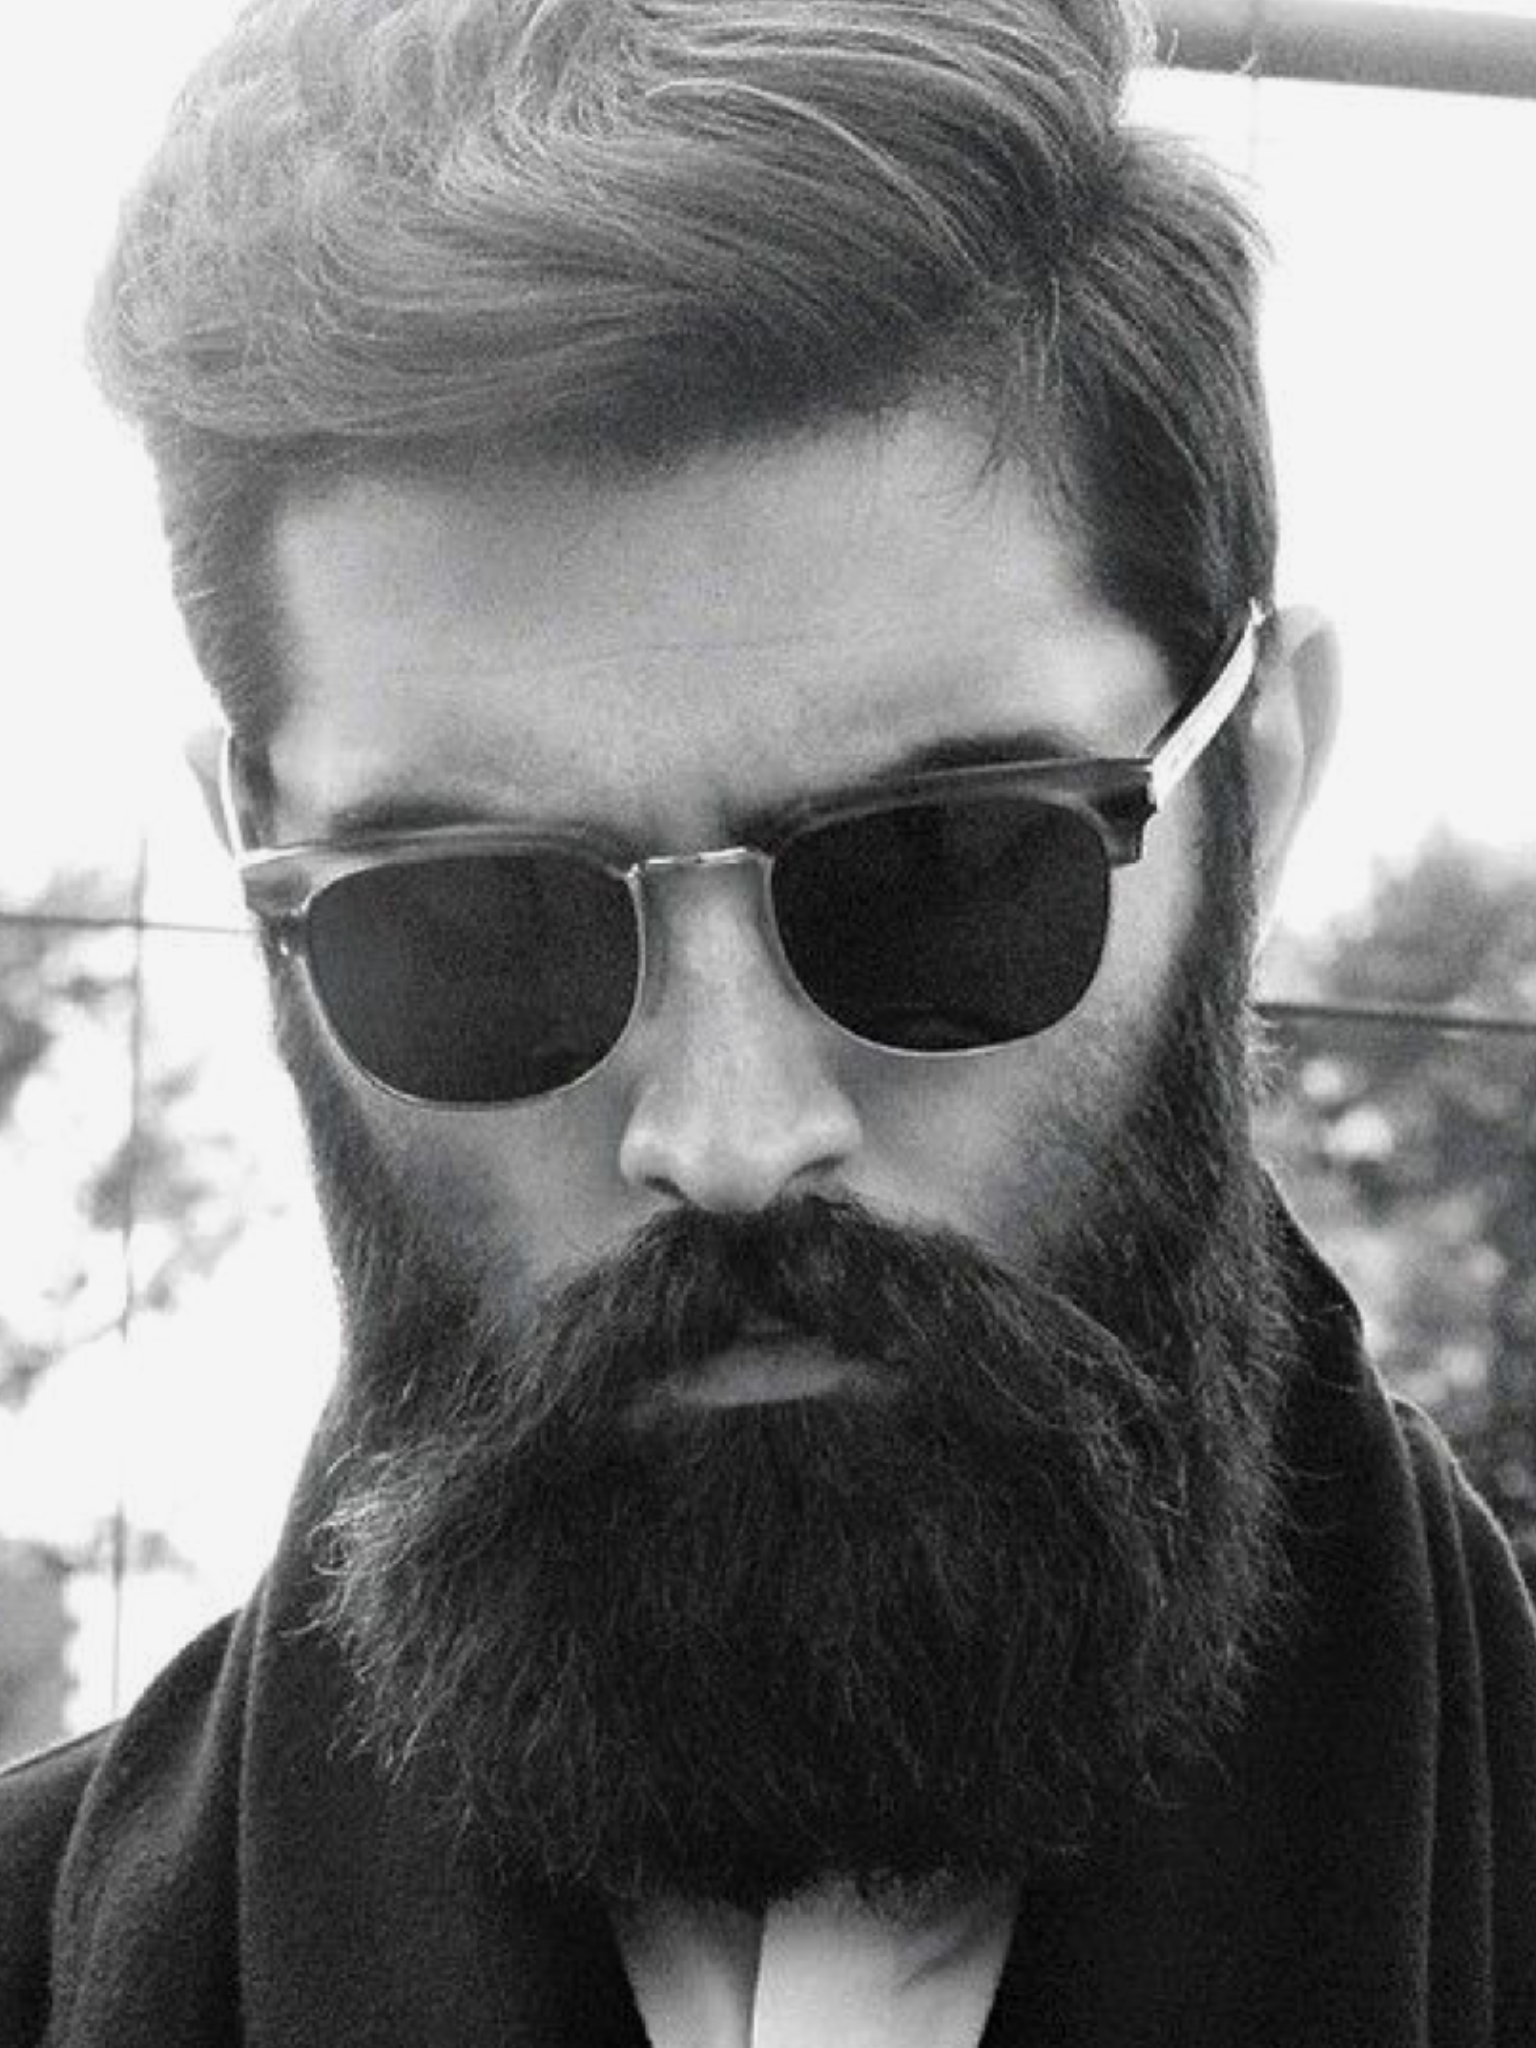 Light Colored Beard Styles How To Brighten And Whiten Gray Silver White Beards Cool Can I